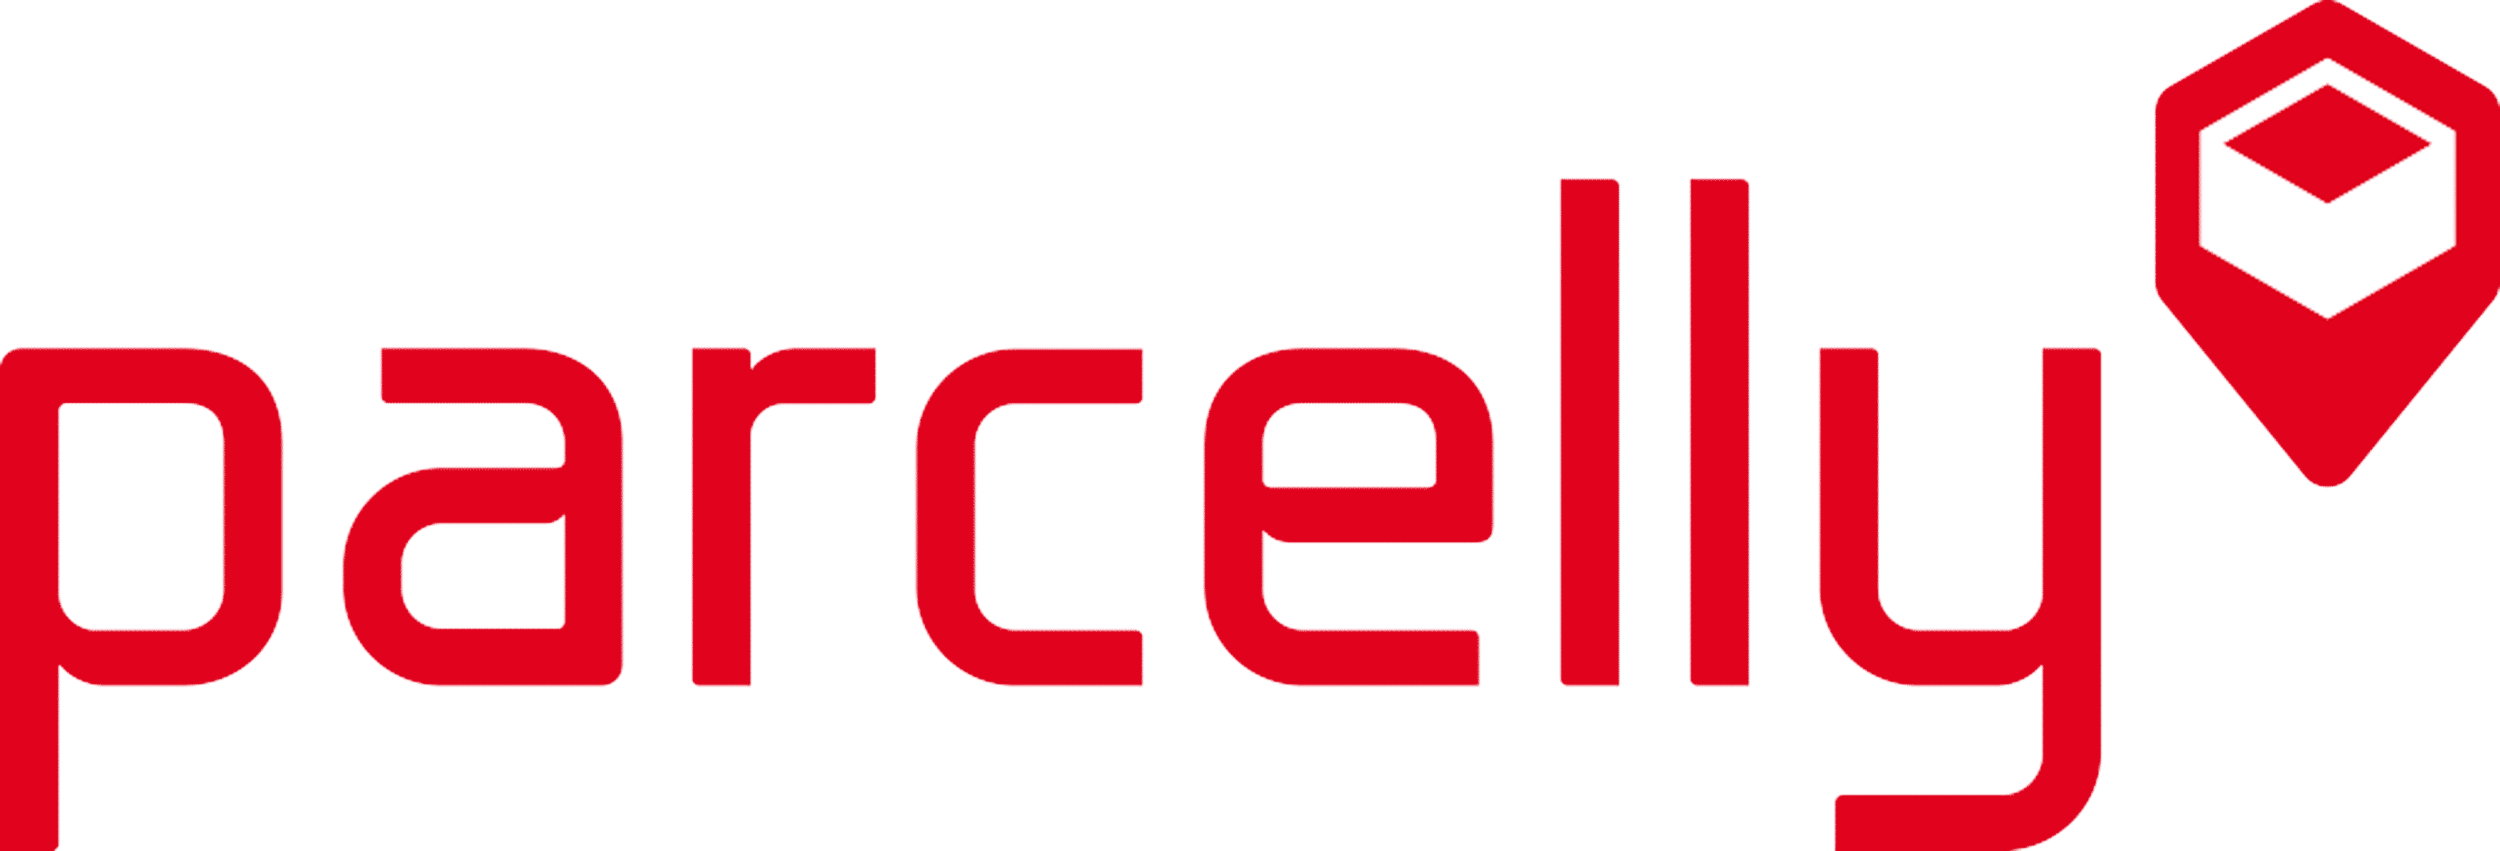 parcelly_logo_highres_png.png